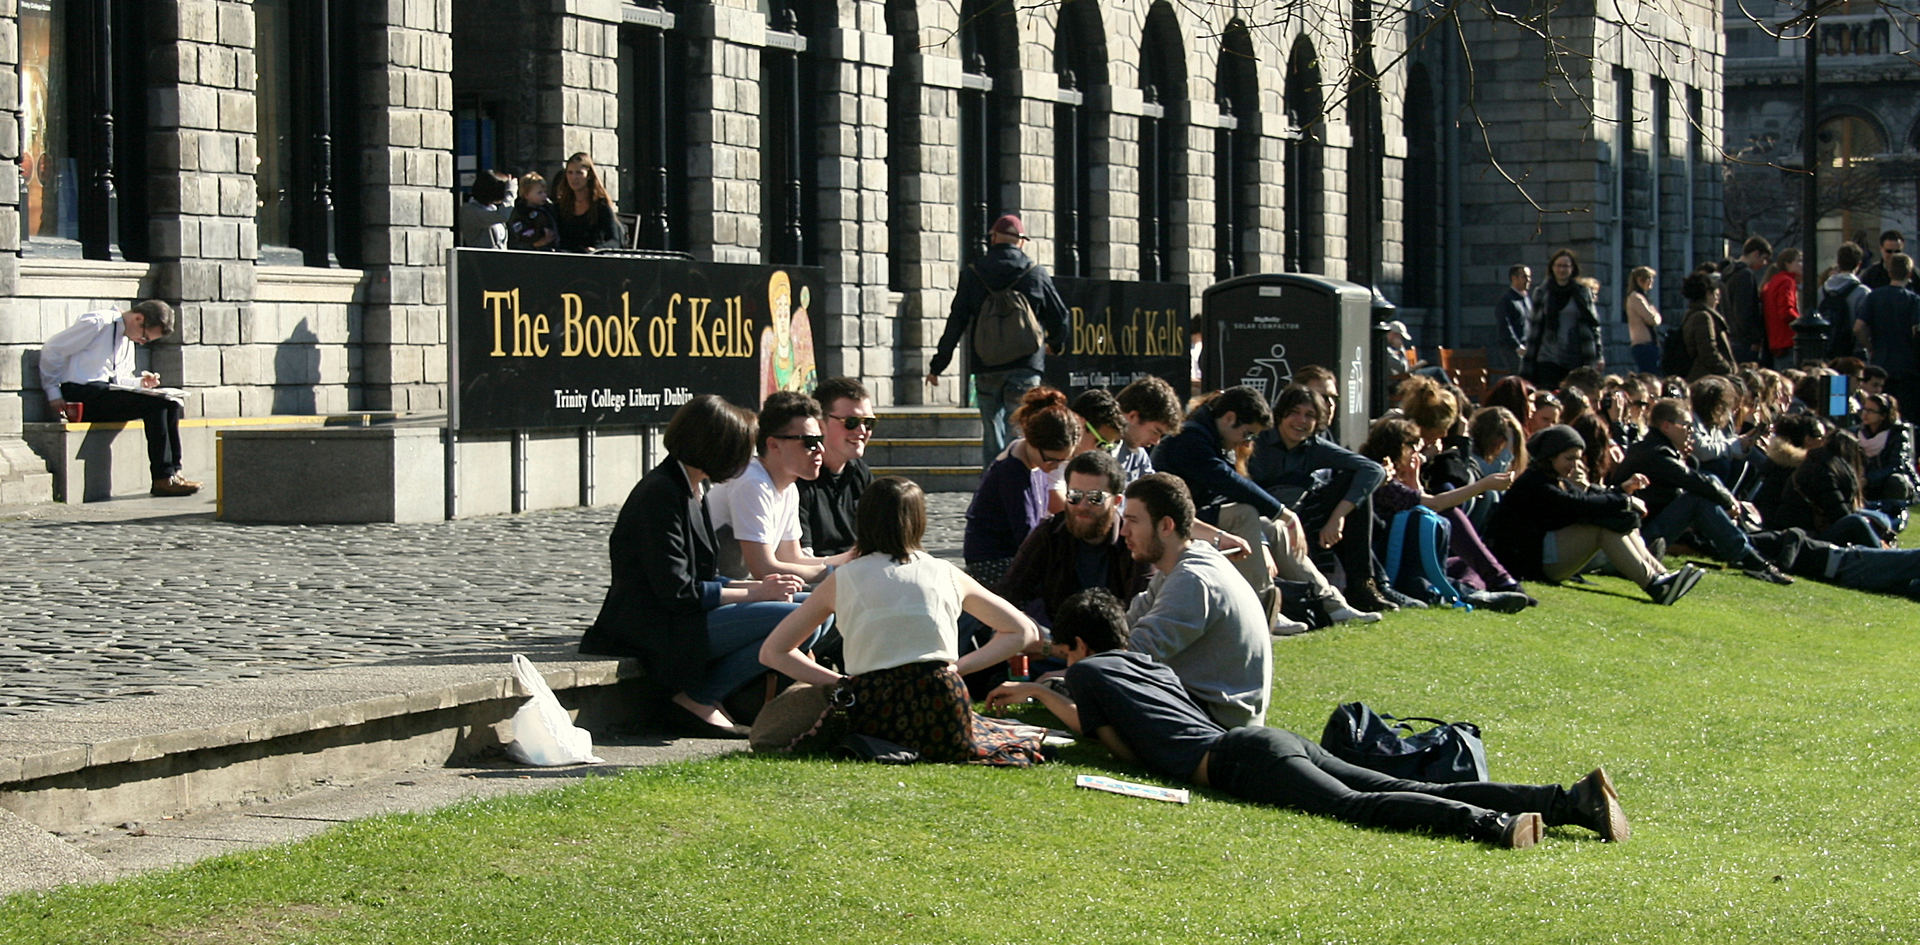 Fellows Square Campus Book of Kells Old